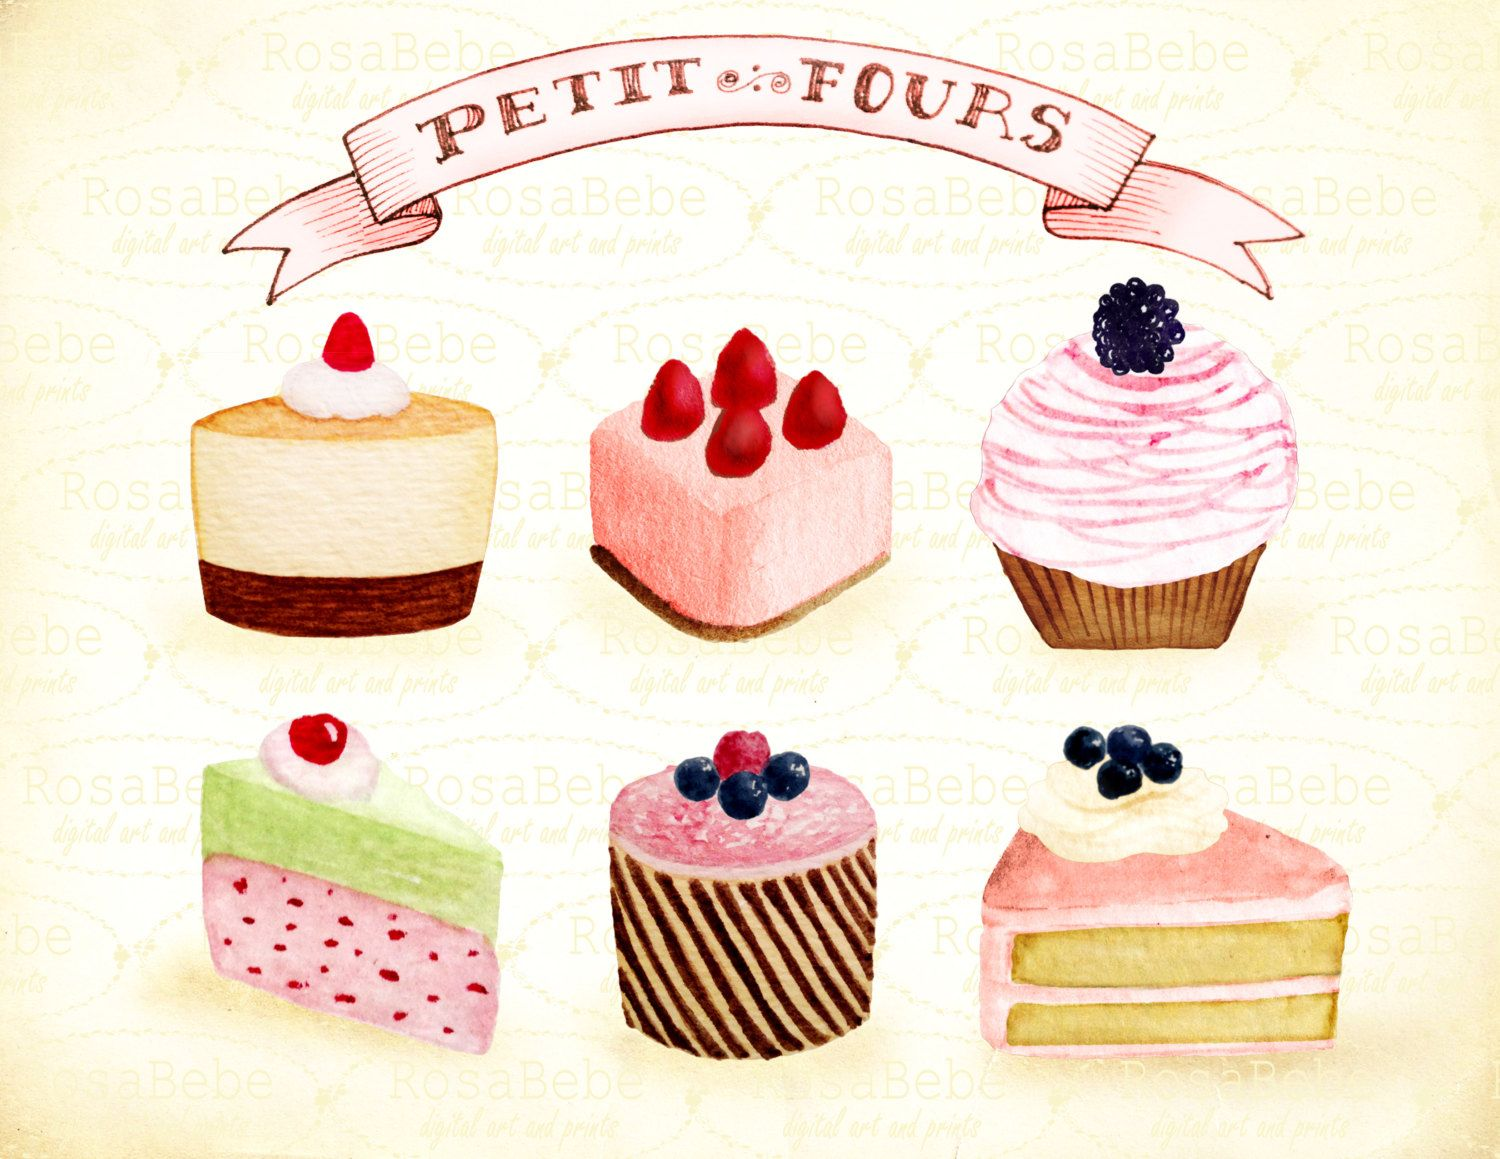 Bakery clipart baked goods. Cupcake bake party hand